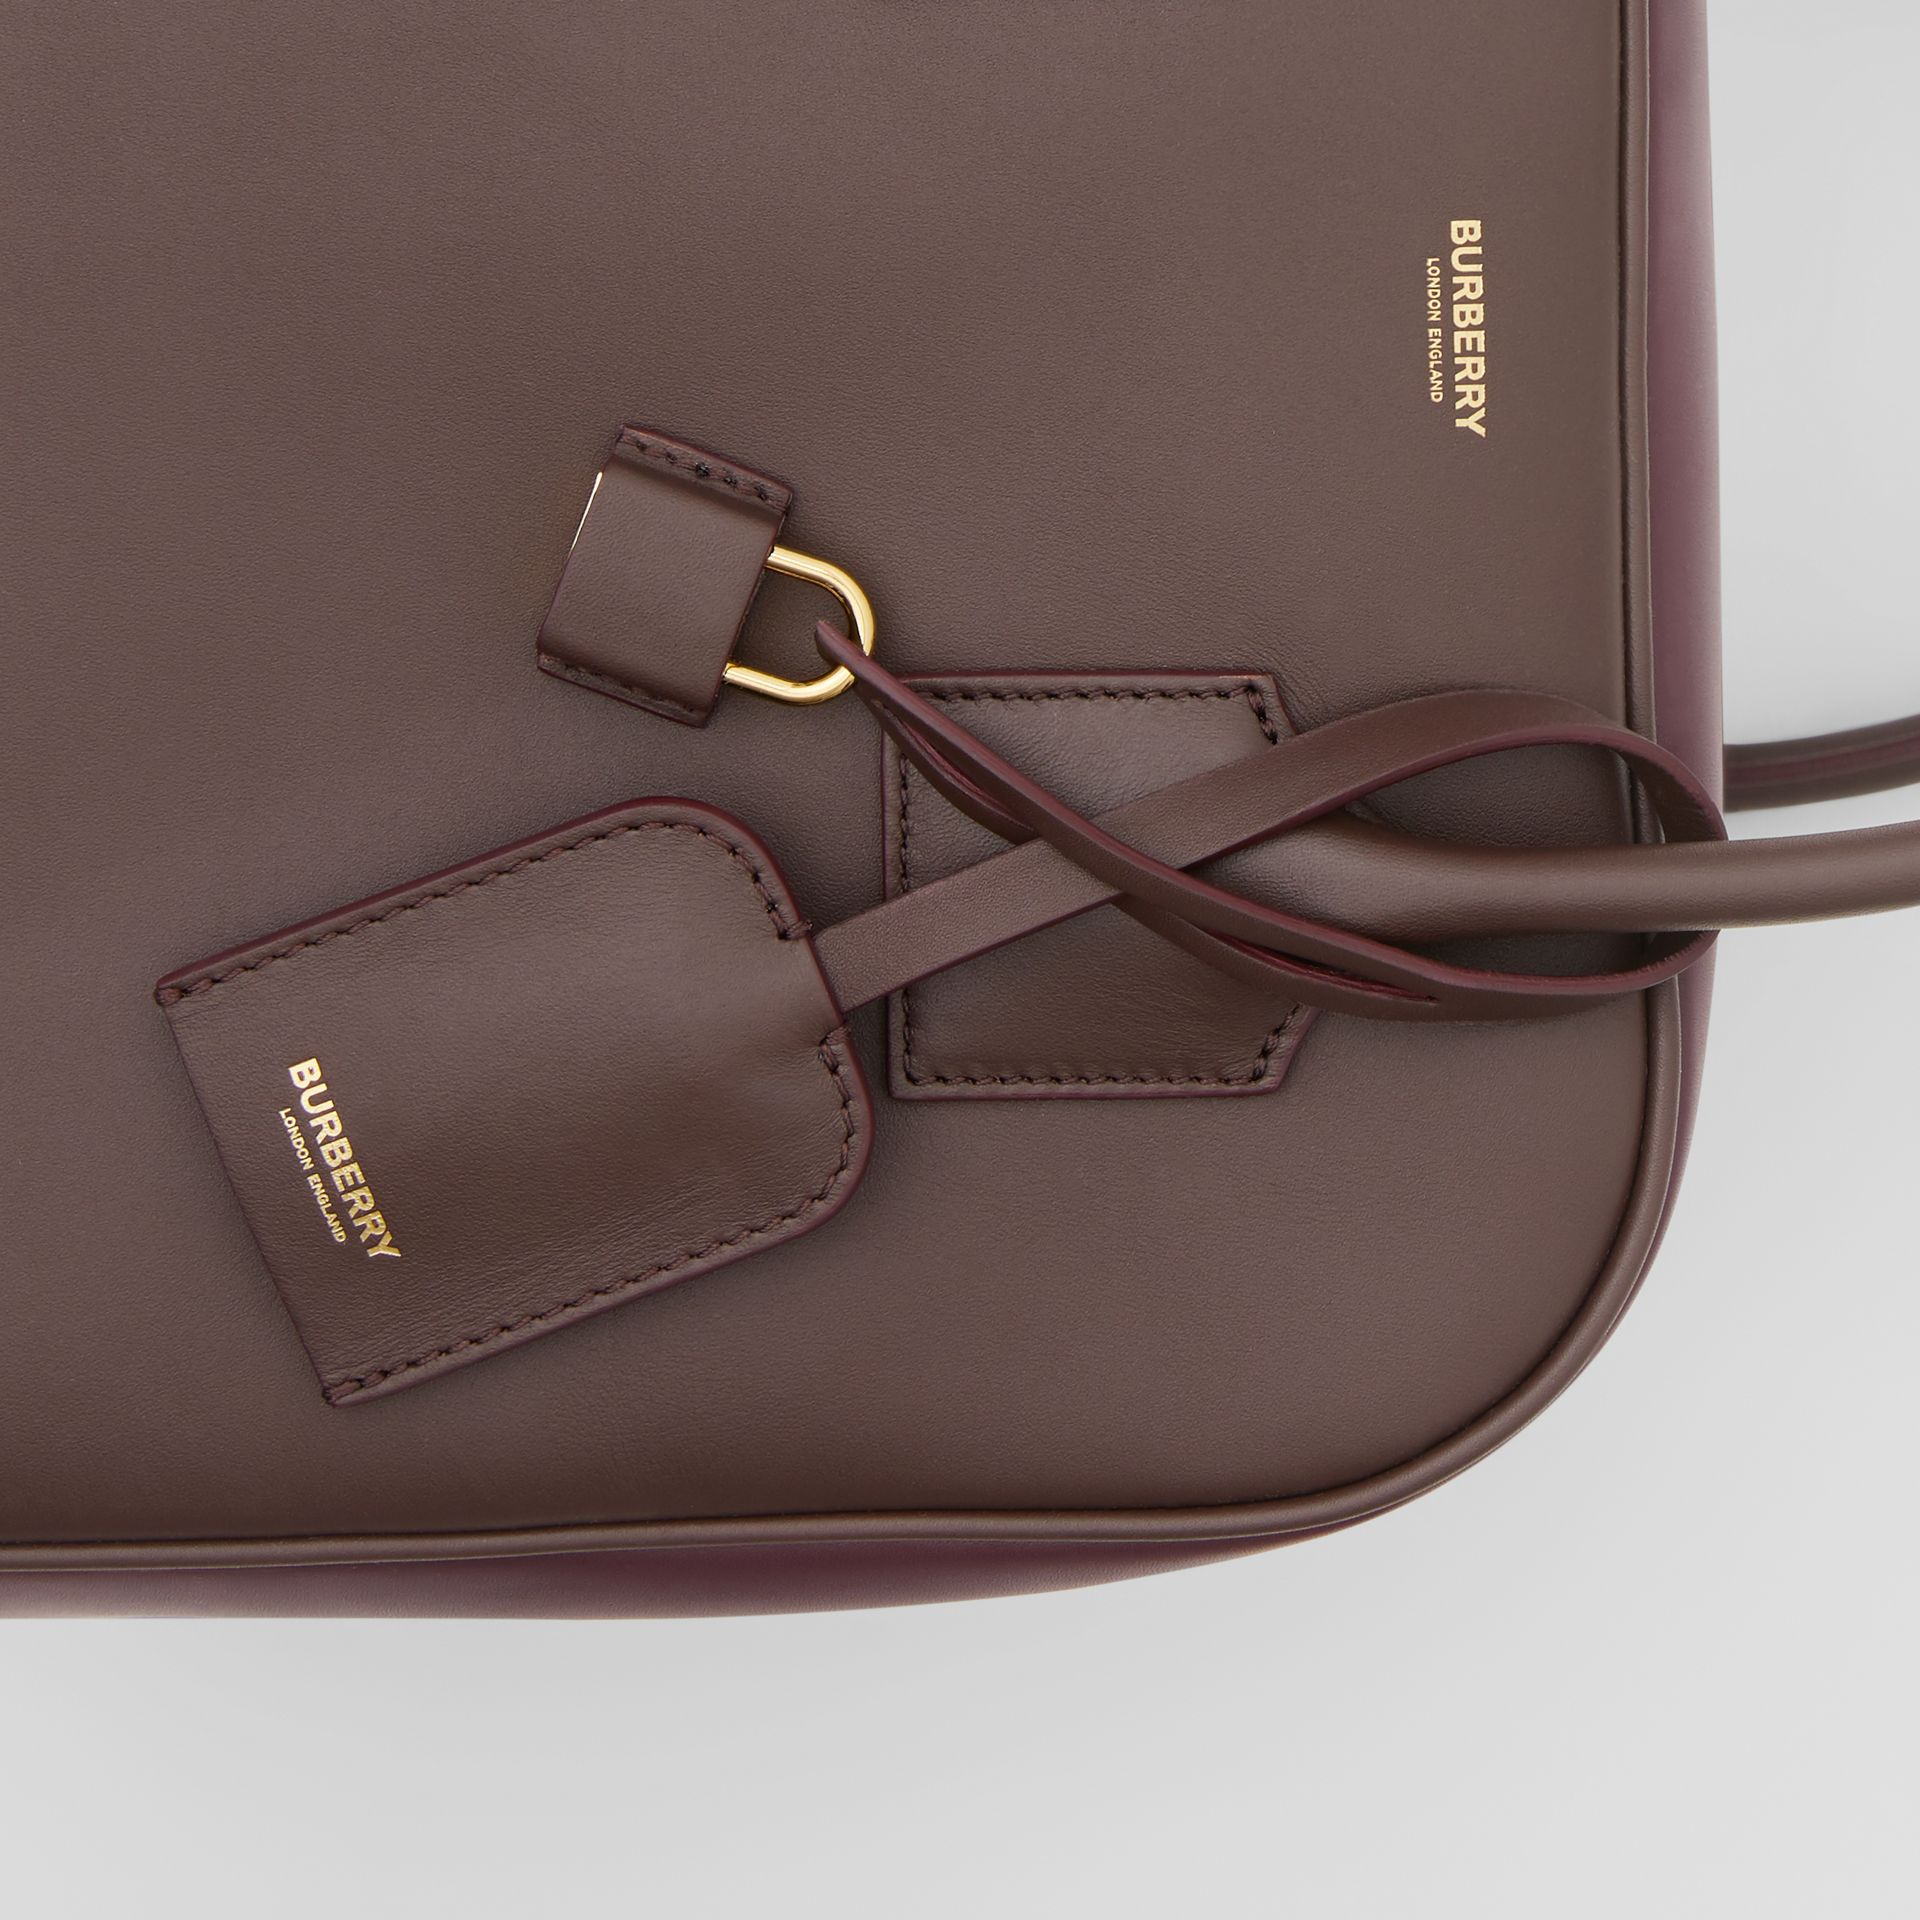 Medium Leather and Suede Cube Bag in Mahogany - Women | Burberry United Kingdom - gallery image 8